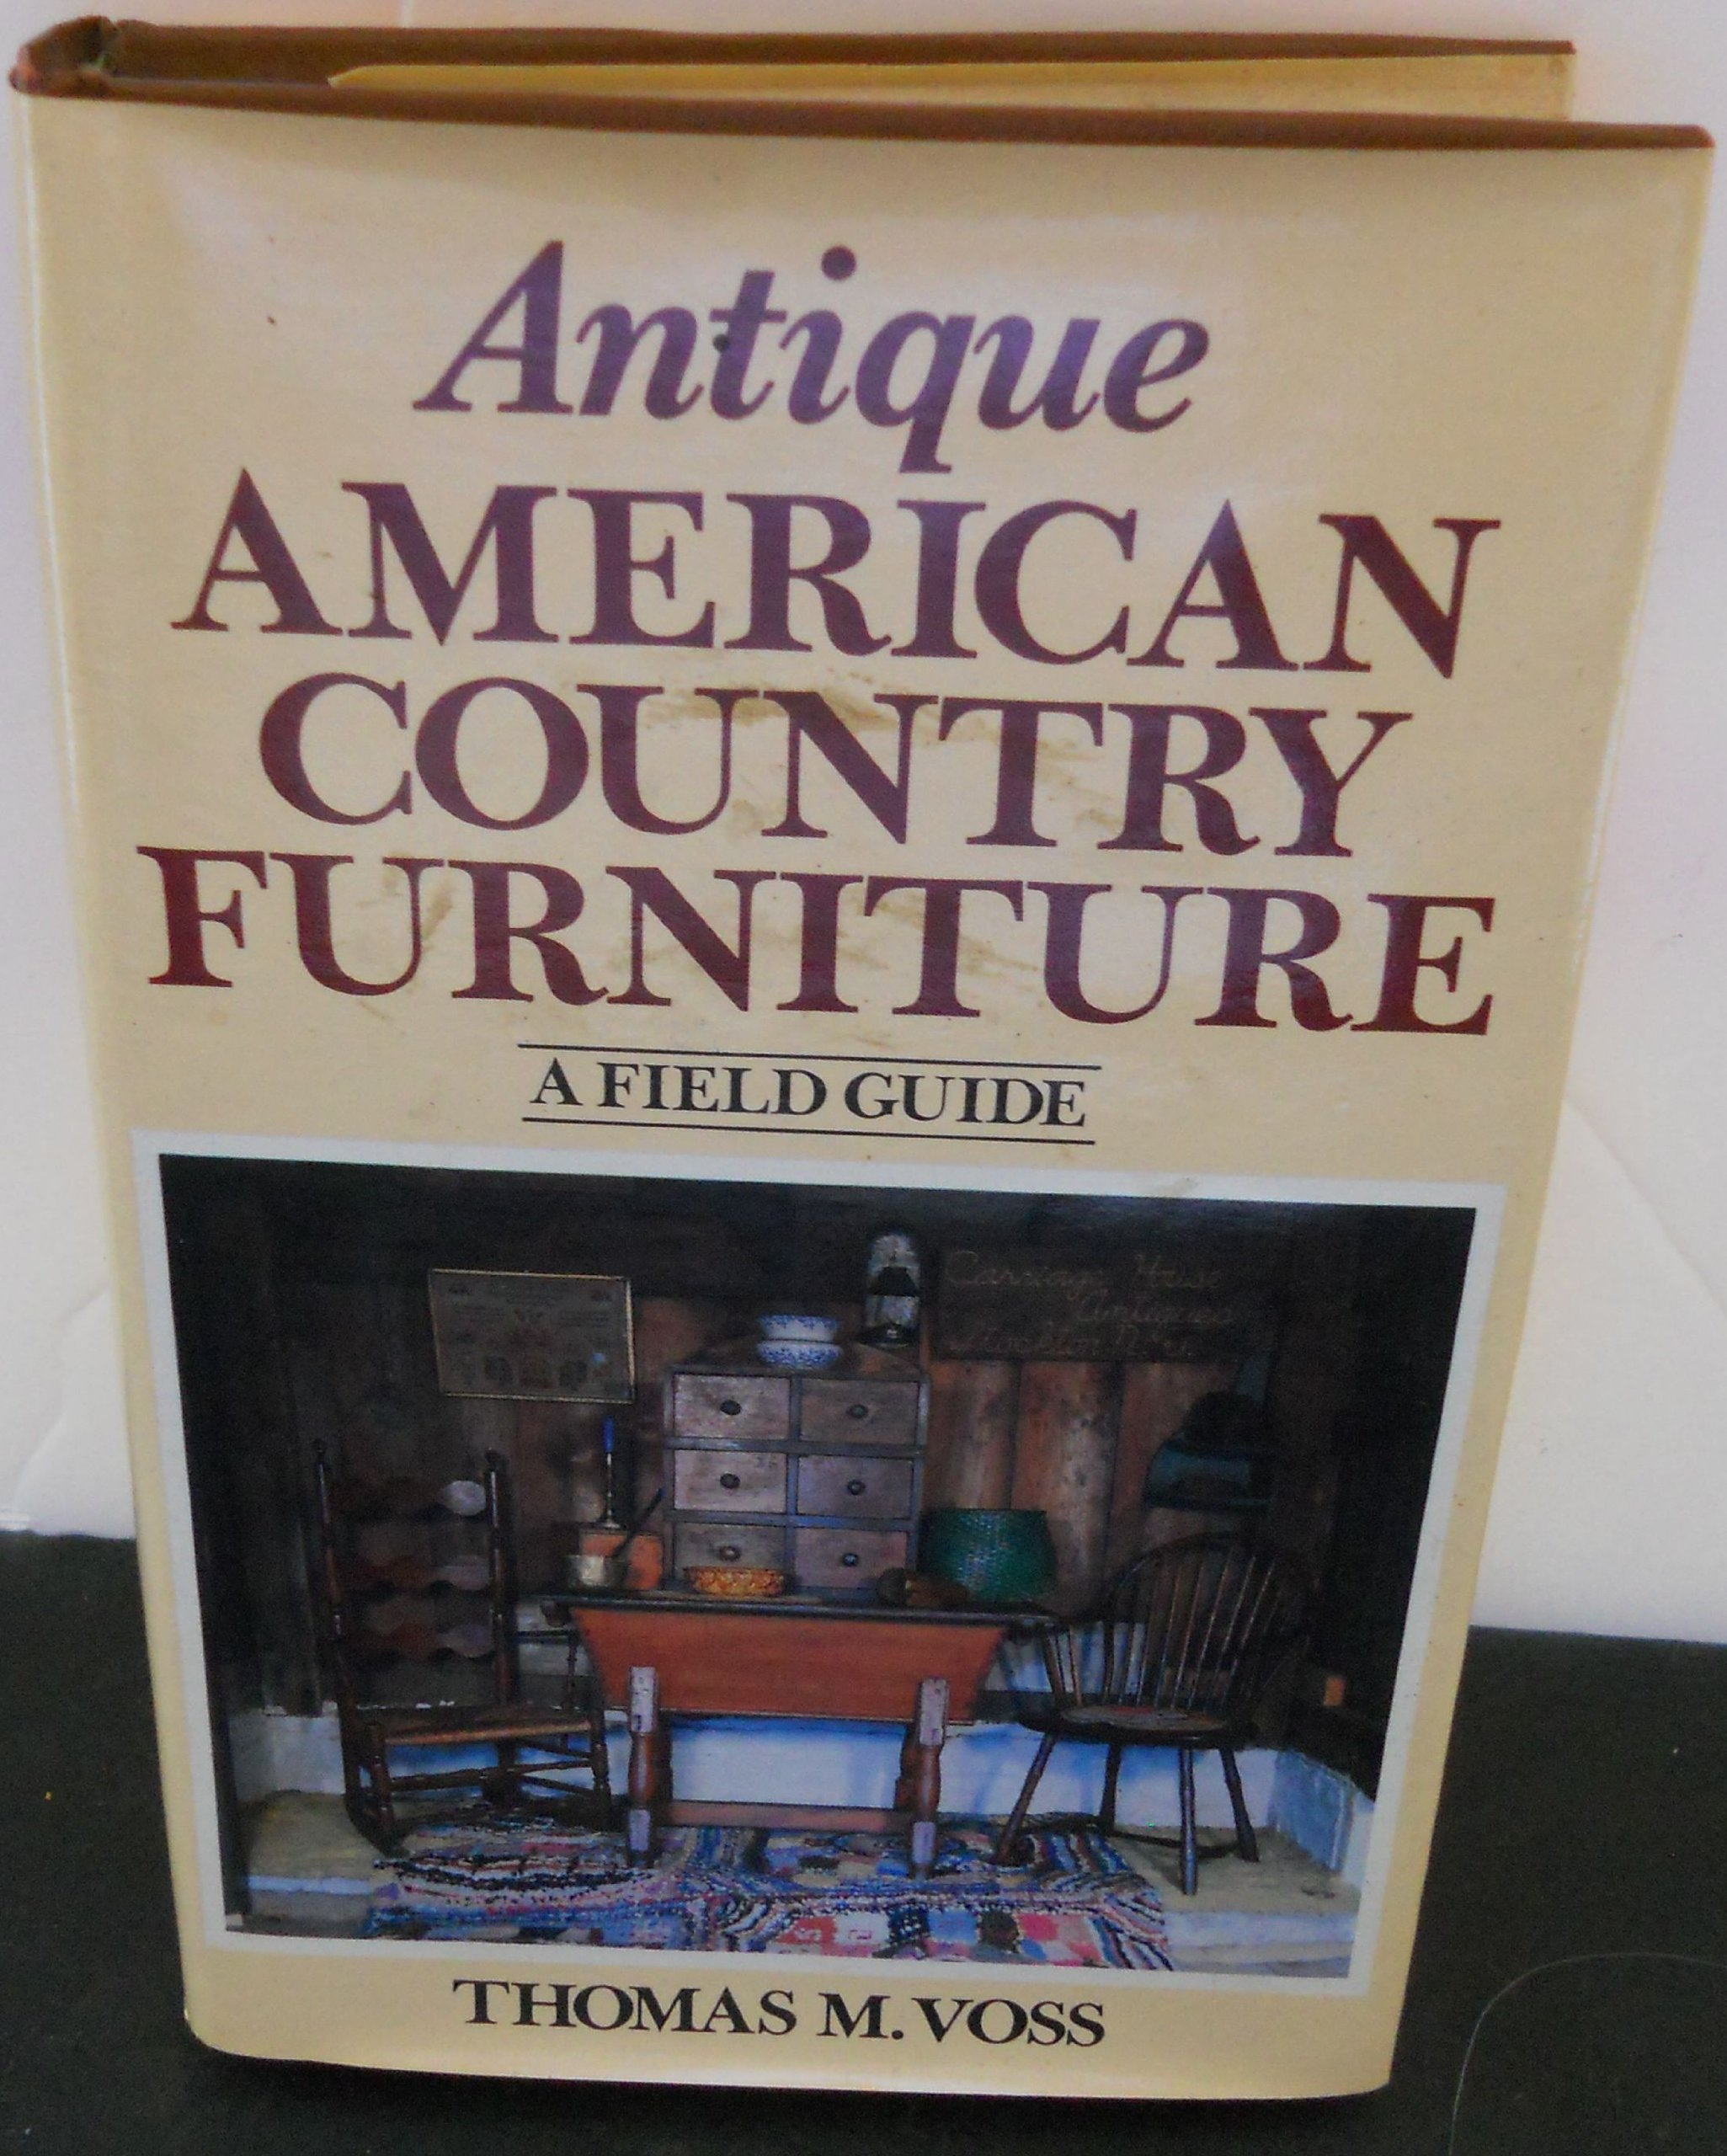 Antique American Country Furniture: A Field Guide: Thomas M. Voss, Donald  Bender: 9780517339893: Amazon.com: Books